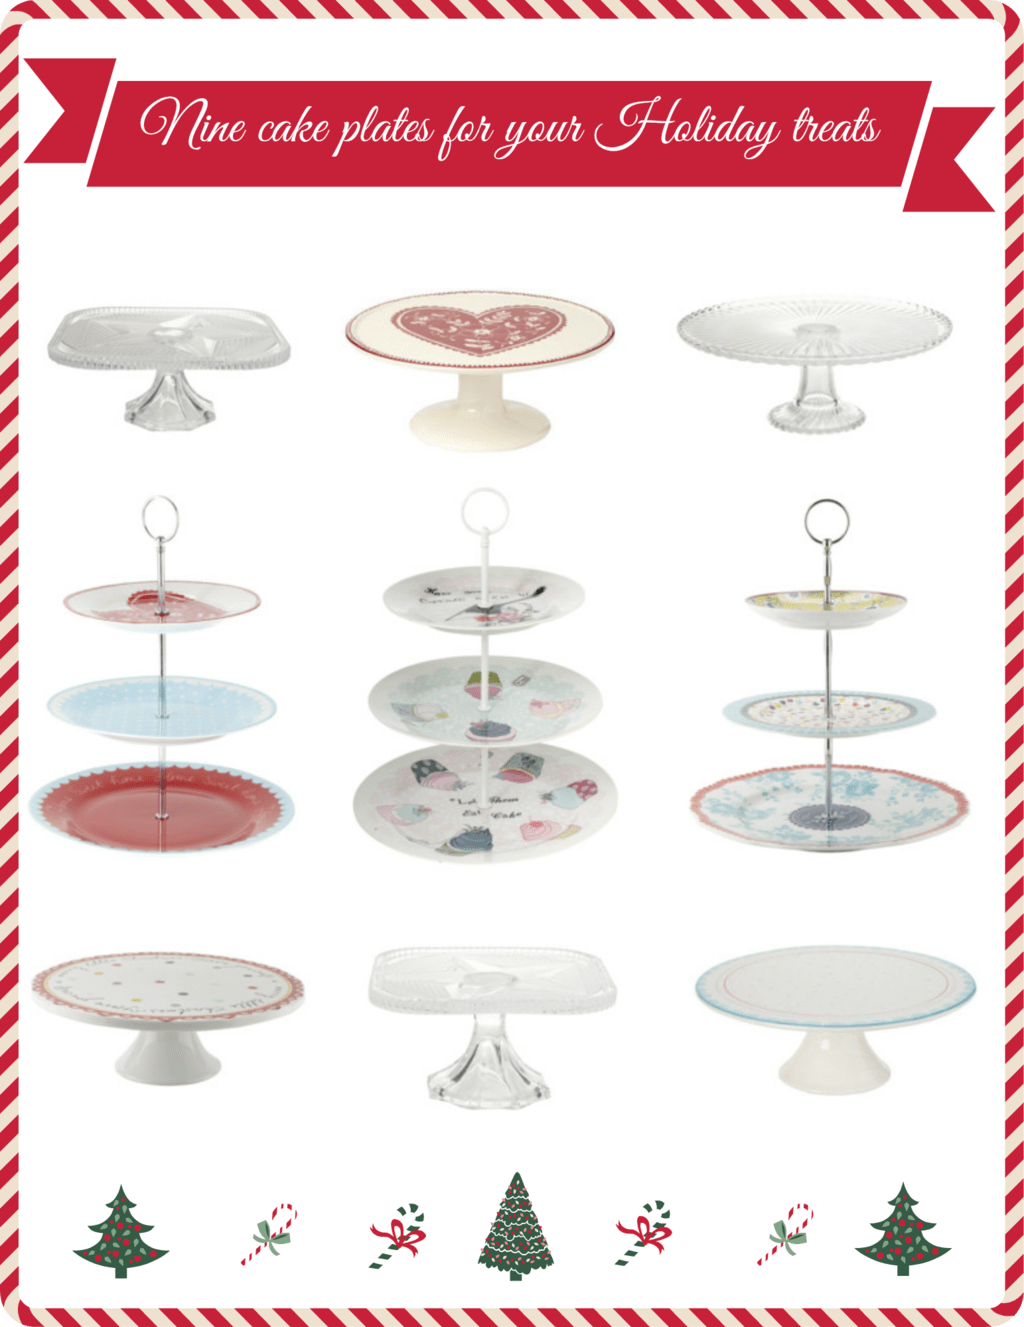 Nine cake plates for your Holiday treats selected by @KrishnaDe